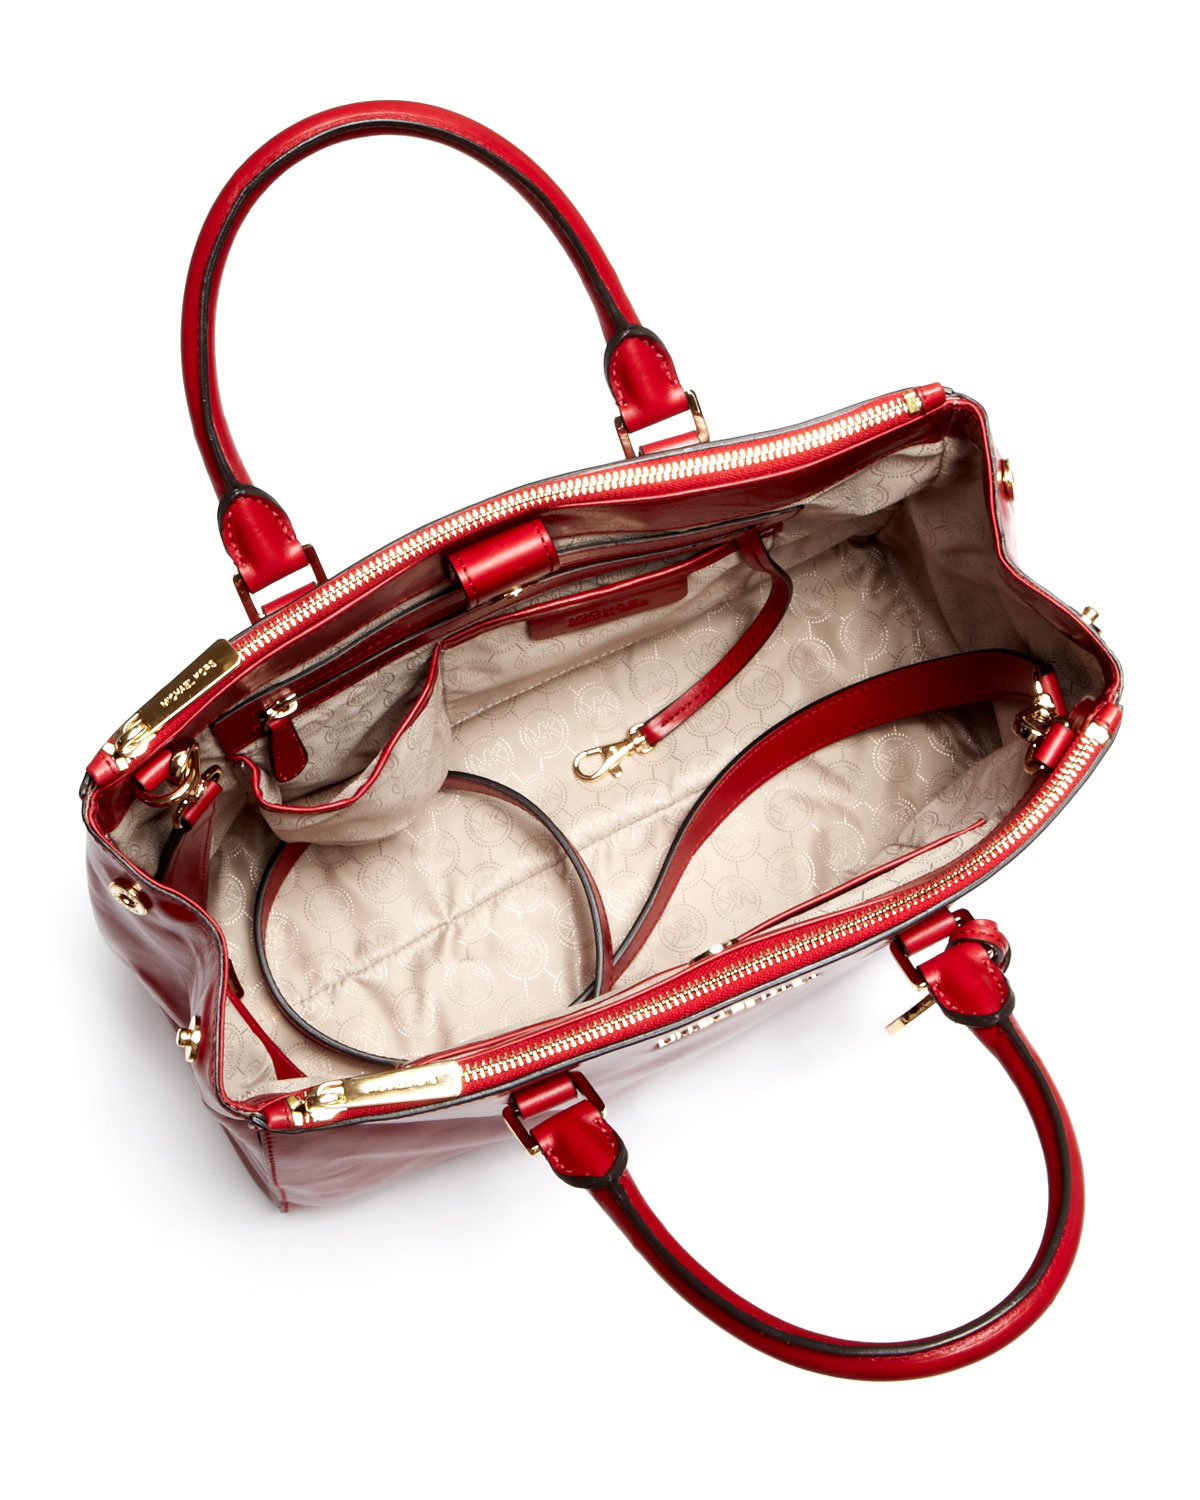 7c7f7cef0b83 Michael Kors Large Bedford Saffiano Dressy Tote in Red - Lyst